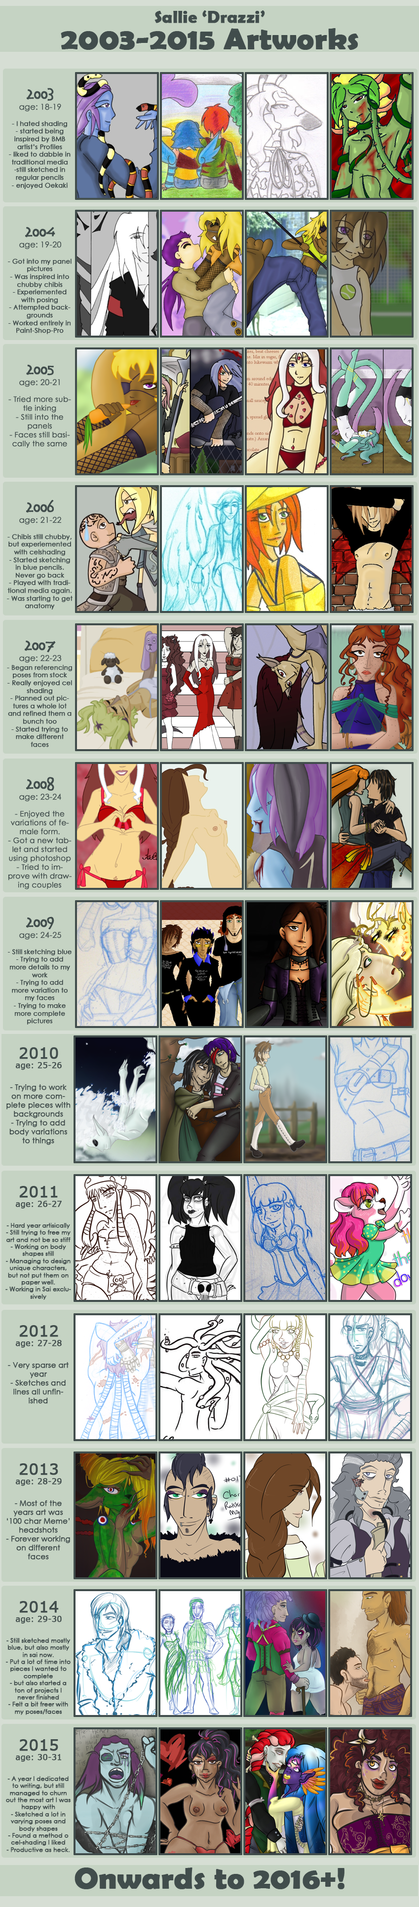 Improvement Meme 2003-2015 by drazzi